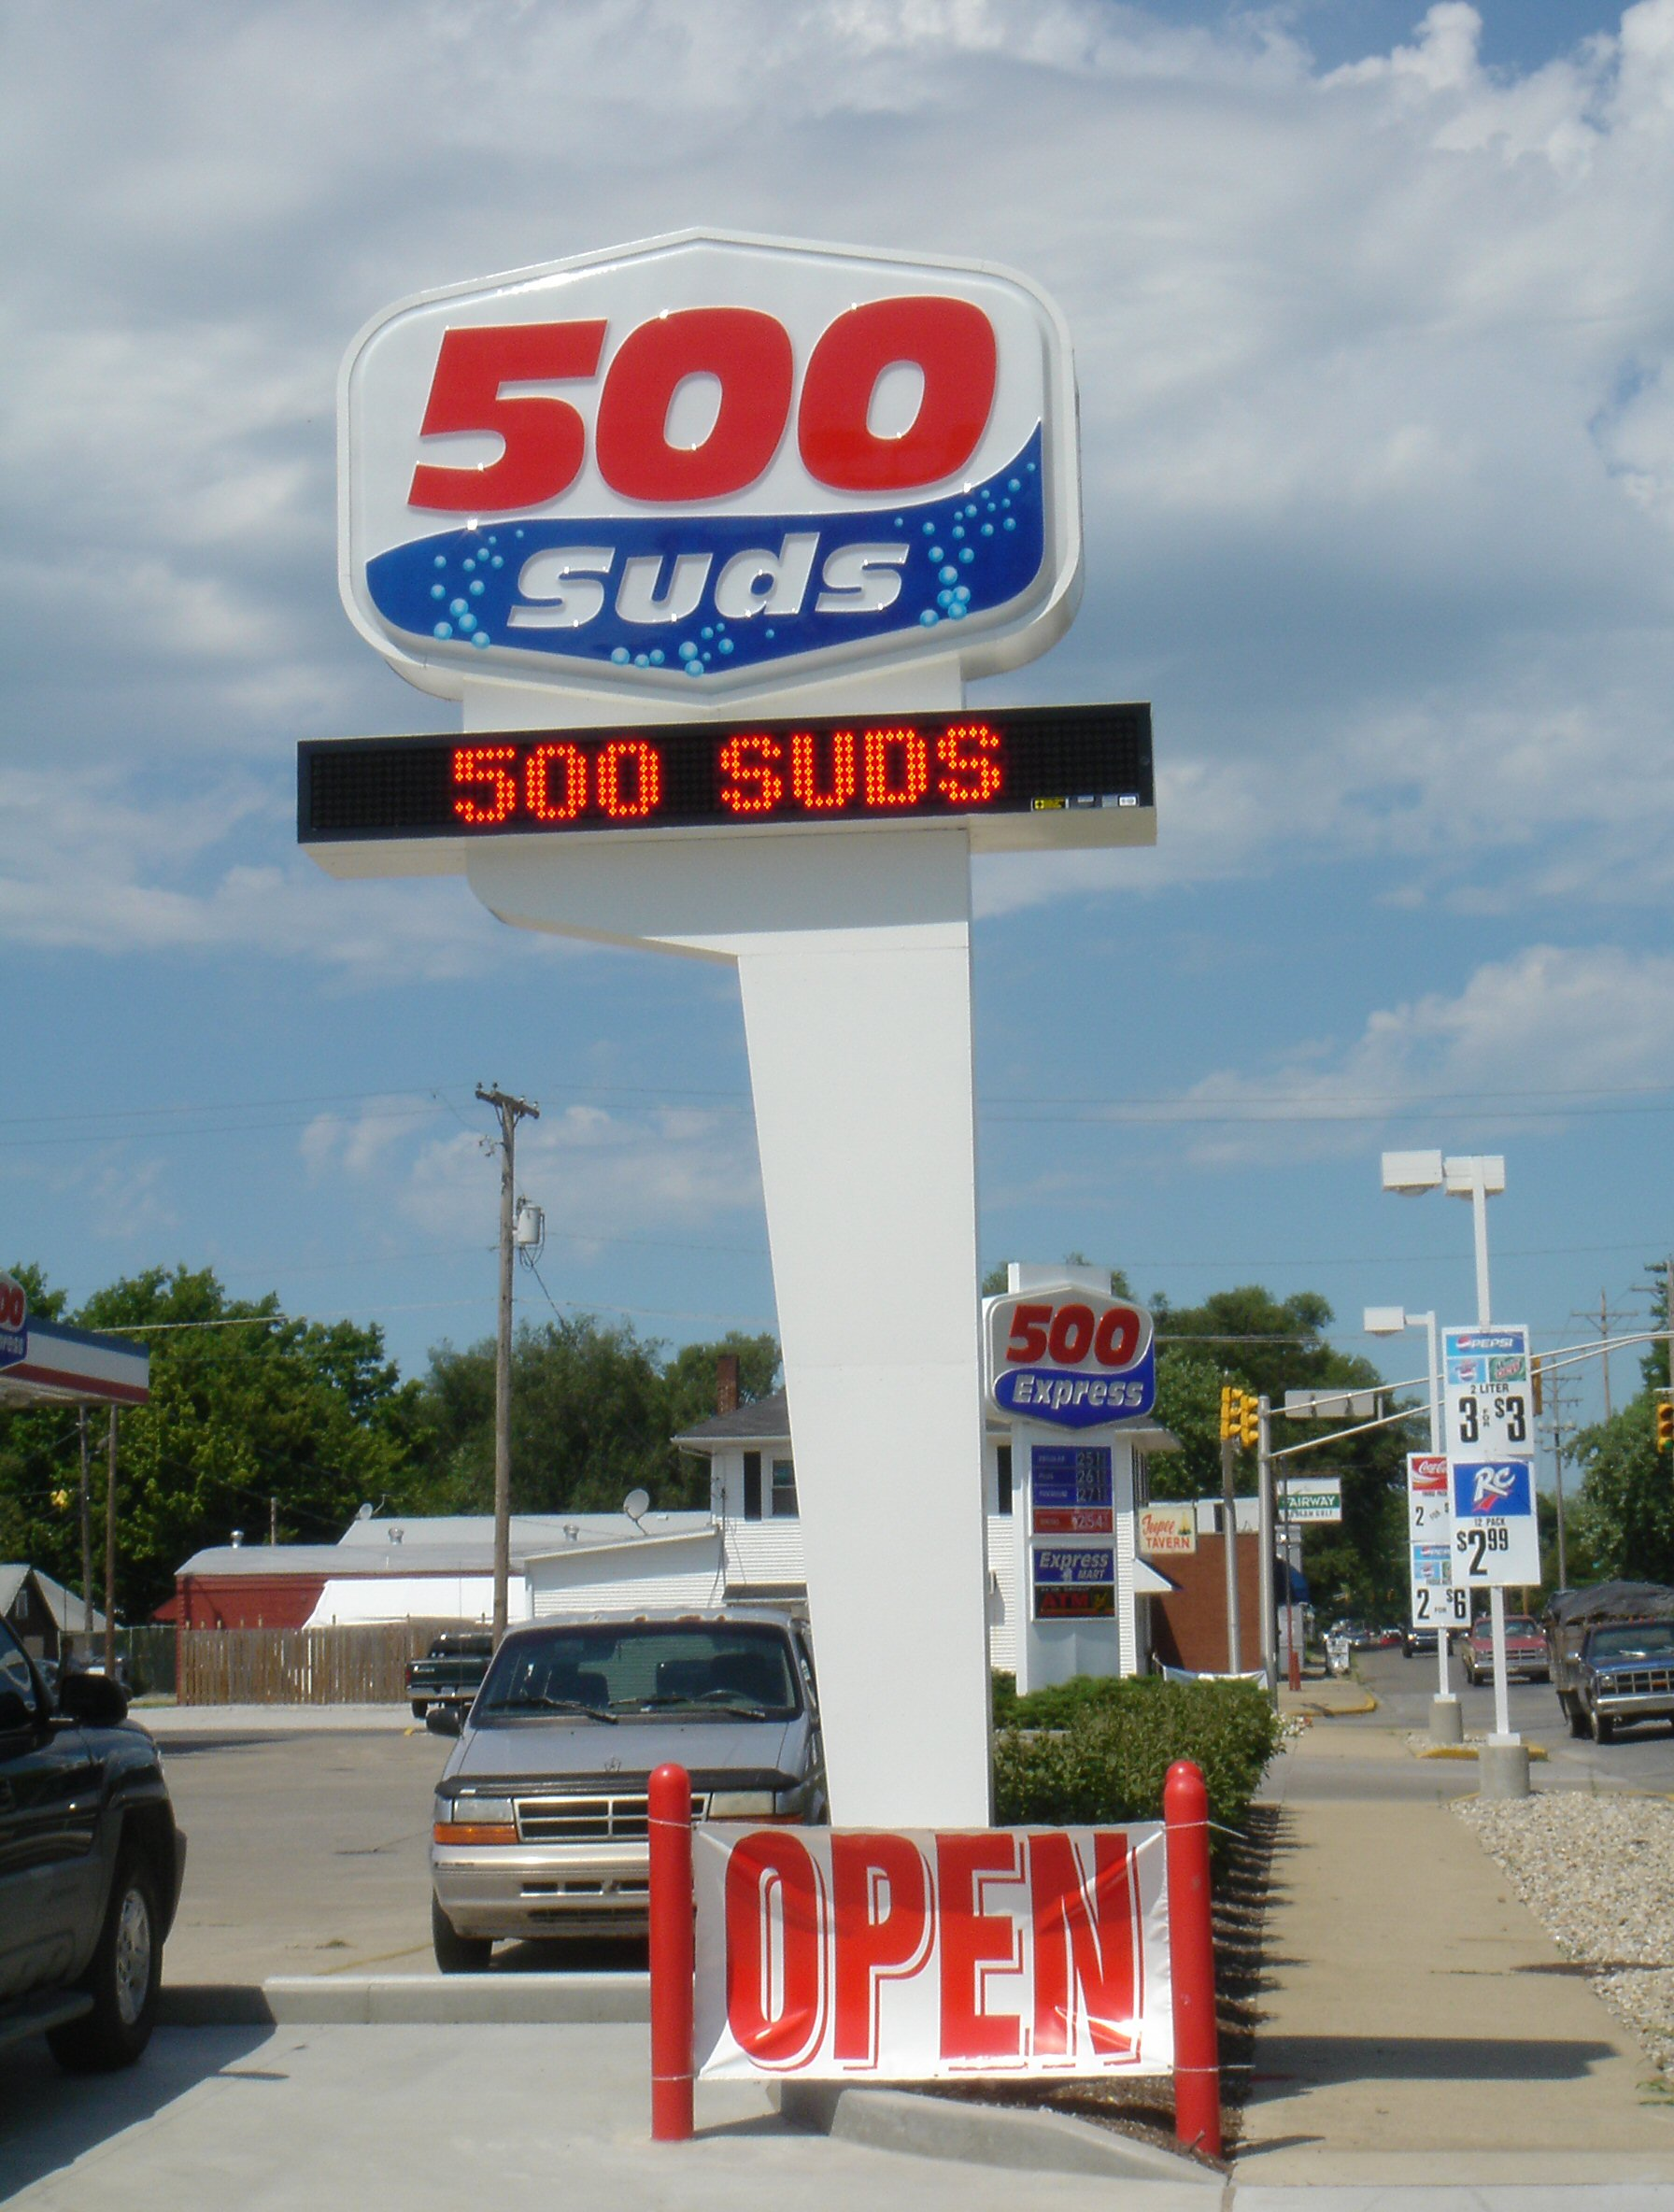 500 Suds Pylon